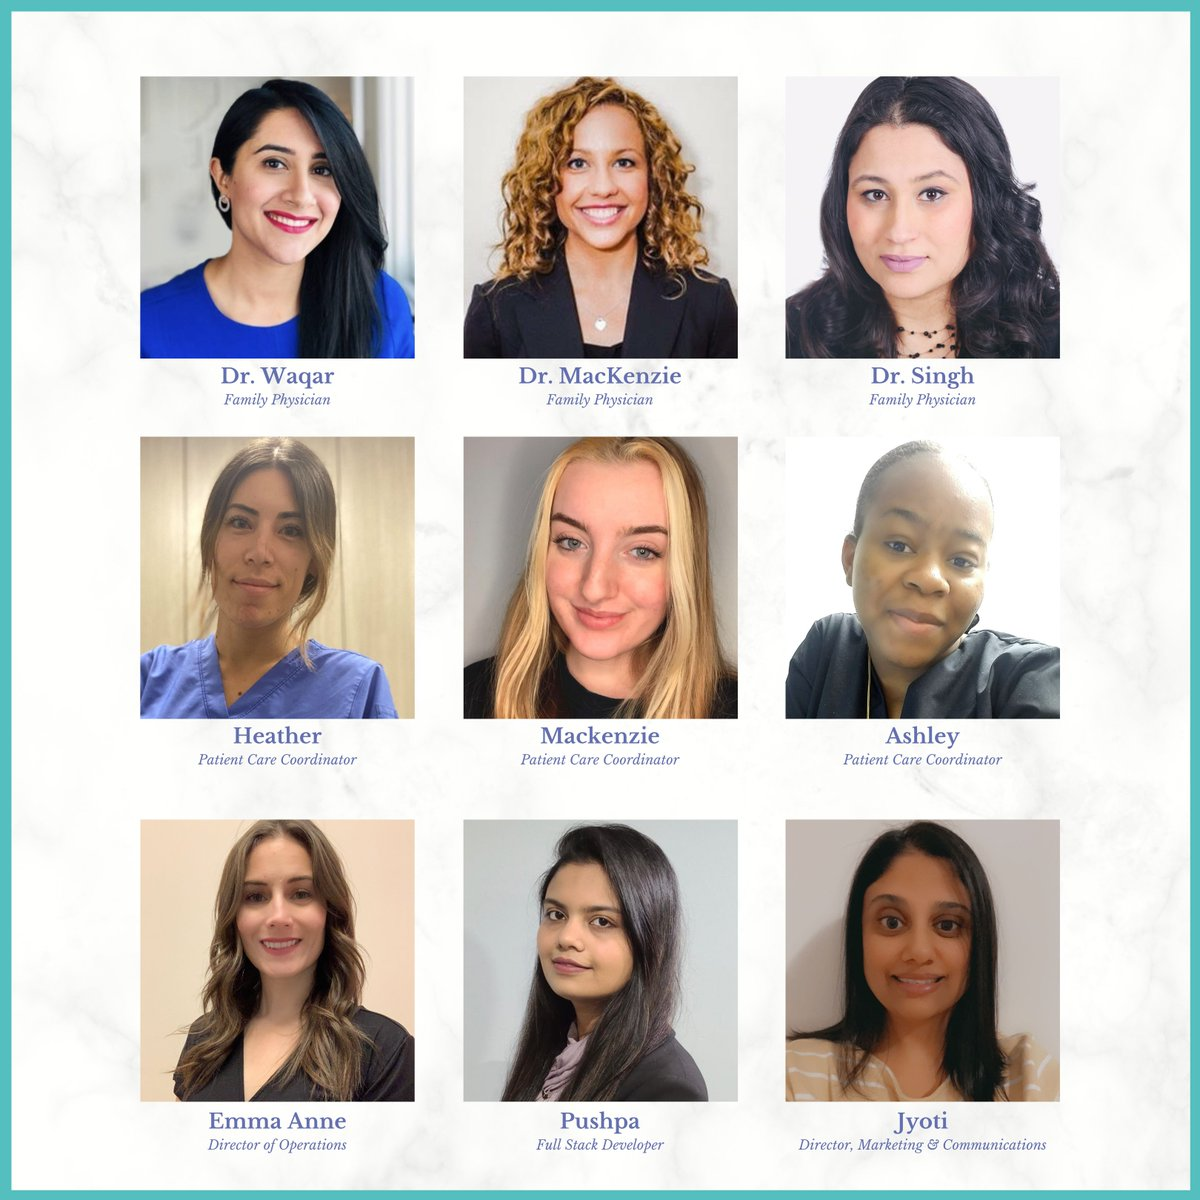 We're throwing the spotlight on some of the amazing women behind Meira Care.  Happy International Women's Day! #IWD2021 #ChooseToChallenge #WomensDay